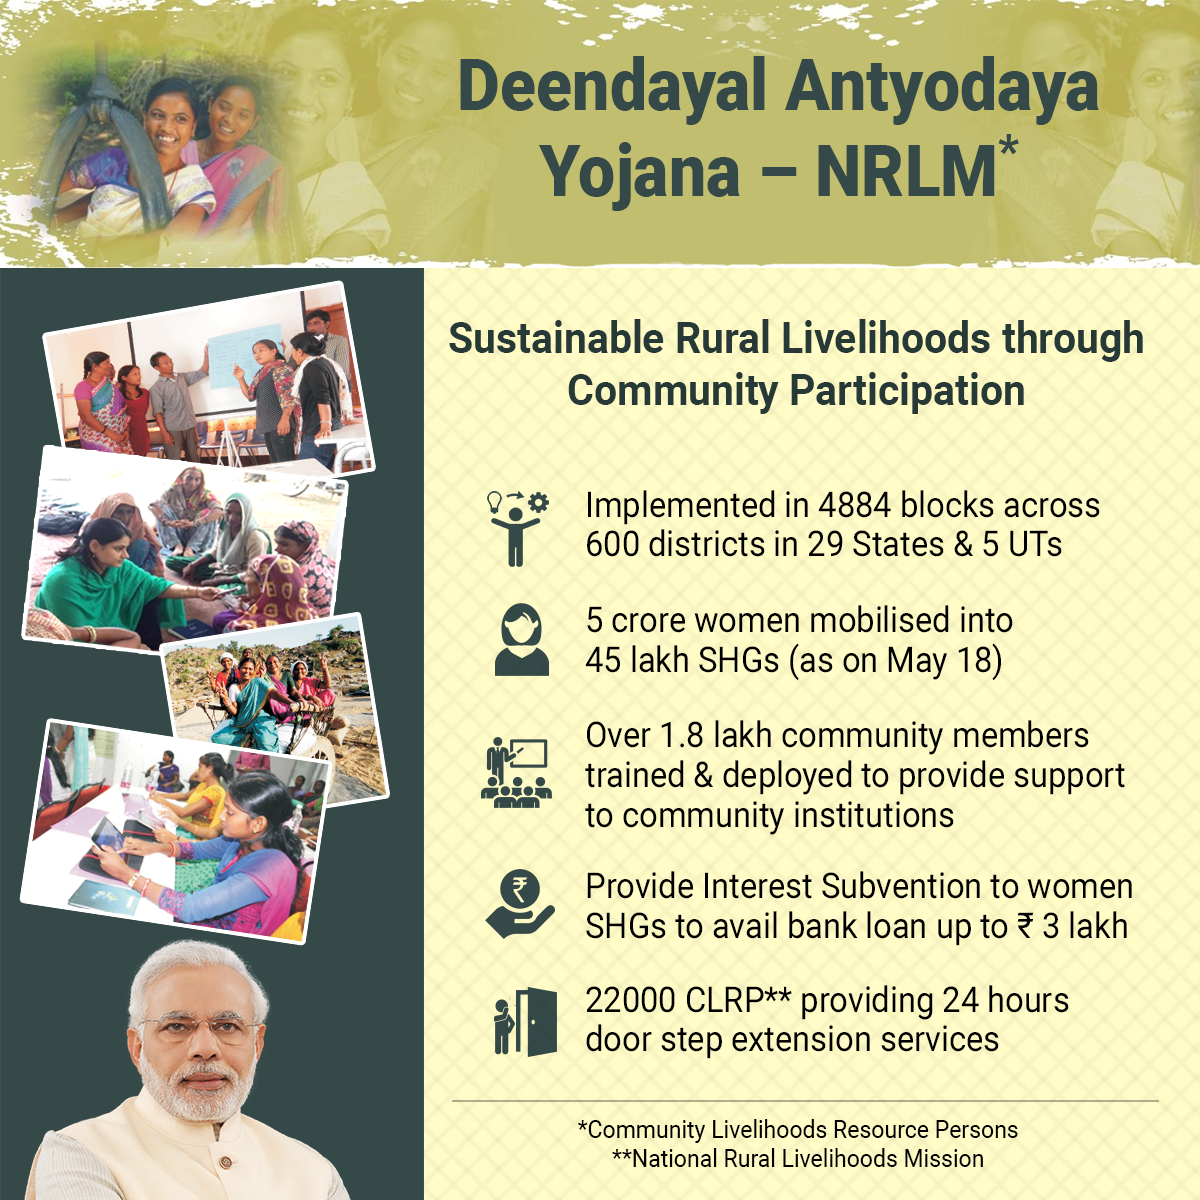 Deendayal Antyodaya Yojana